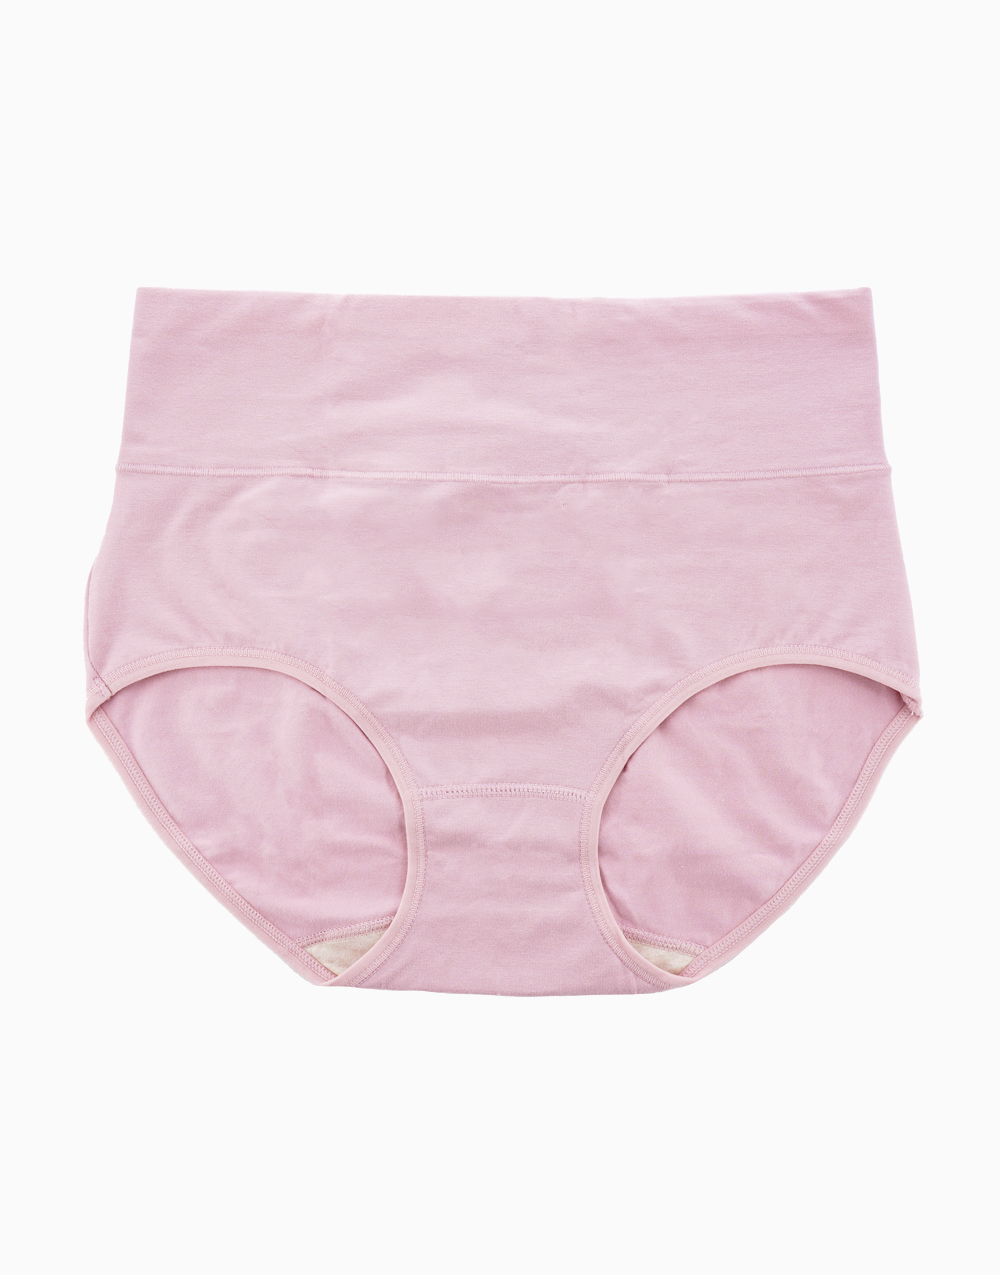 Belly Bikinis in Blush Pink (Set of 3 High Rise Control Panties) by Jellyfit   XL